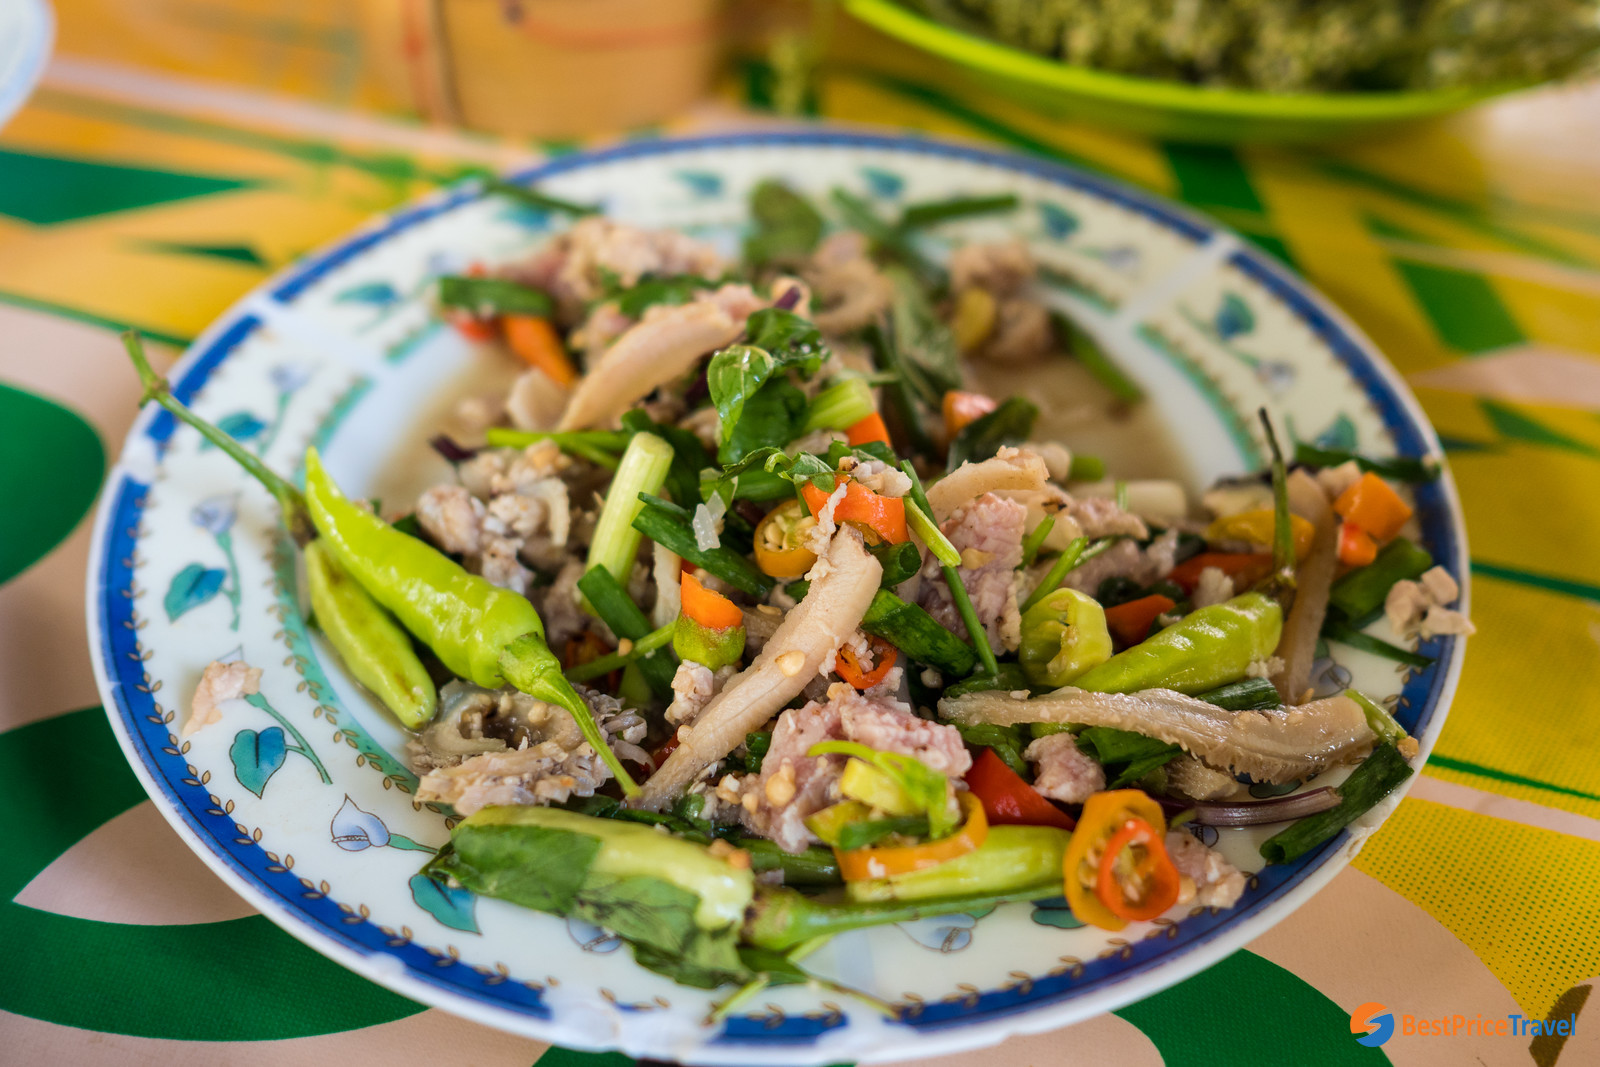 Laap - typical must-try food in laos